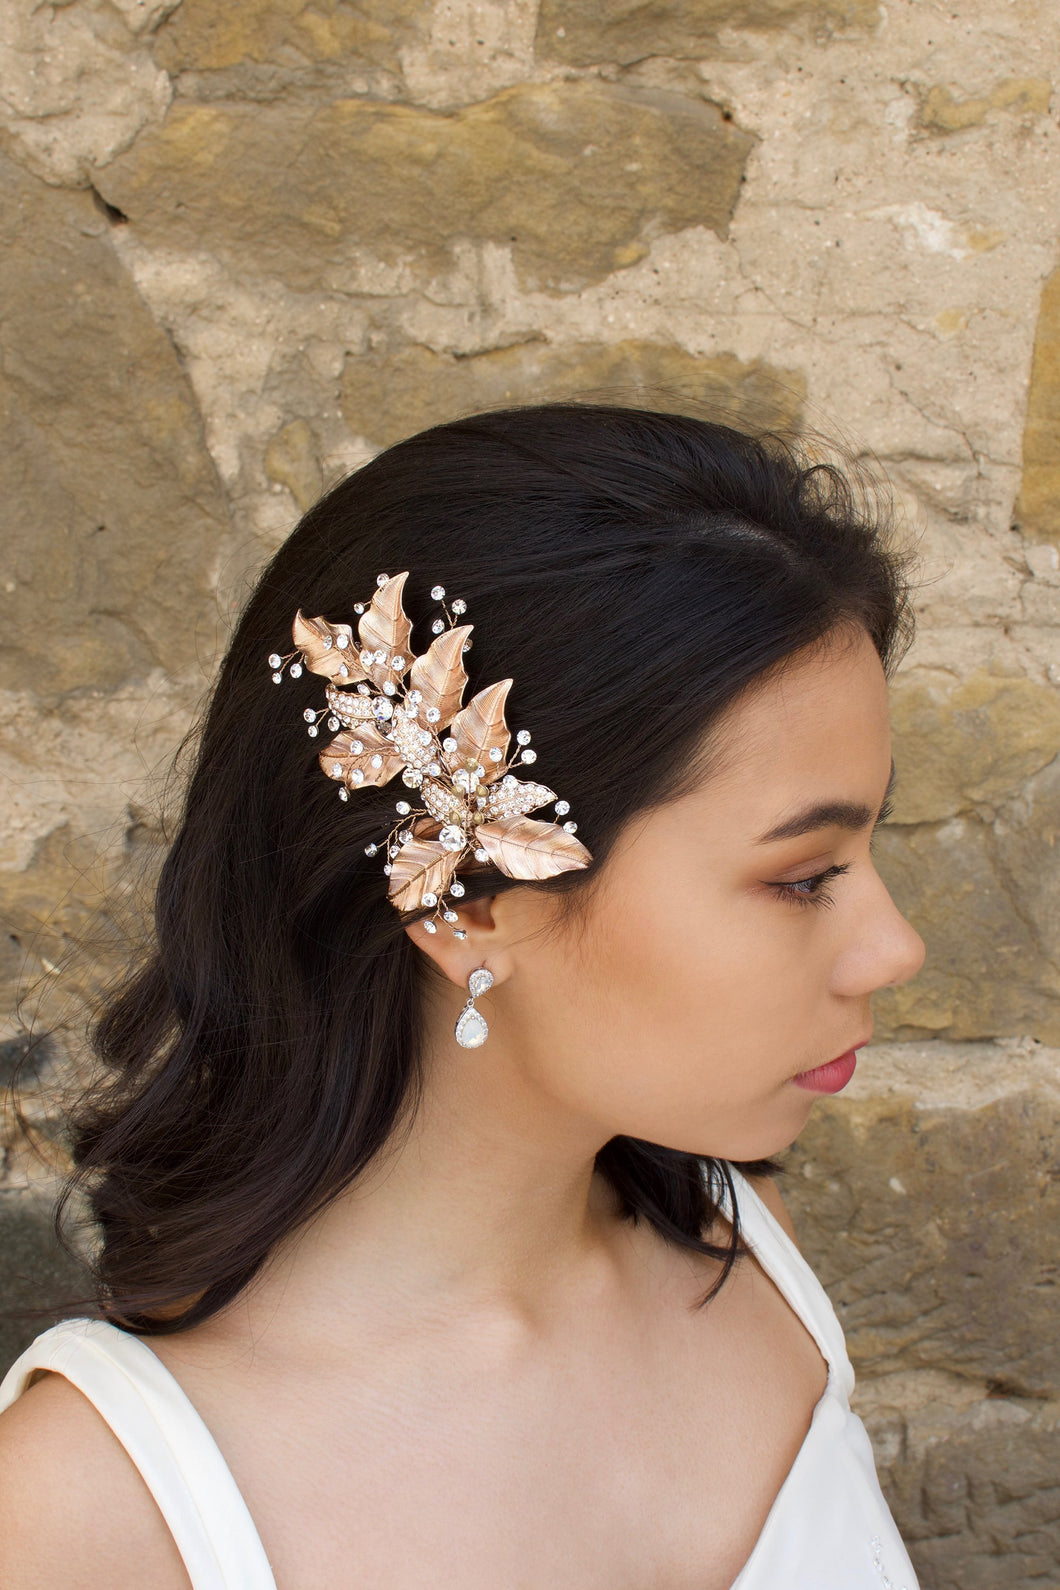 Rose Gold Leaves Side Comb with bright crystal sprigs worn by a dark hair model with a stone wall backdrop.